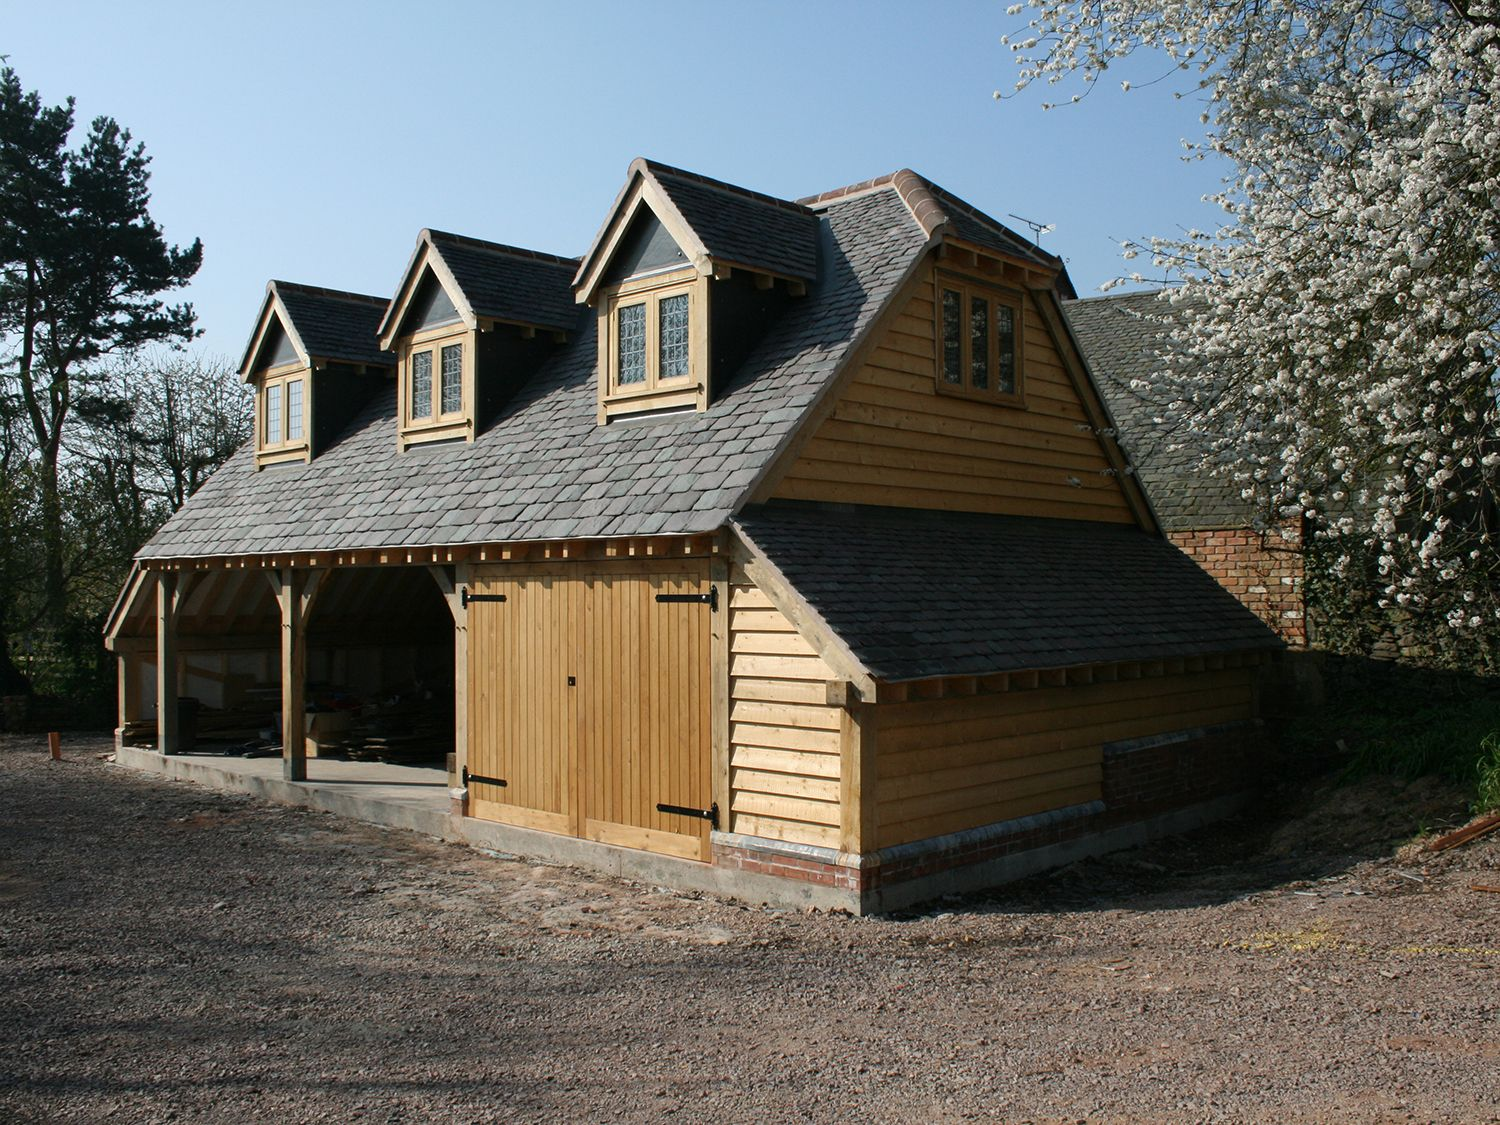 3 Bay Garage with Room Above Shires Oak Buildings in